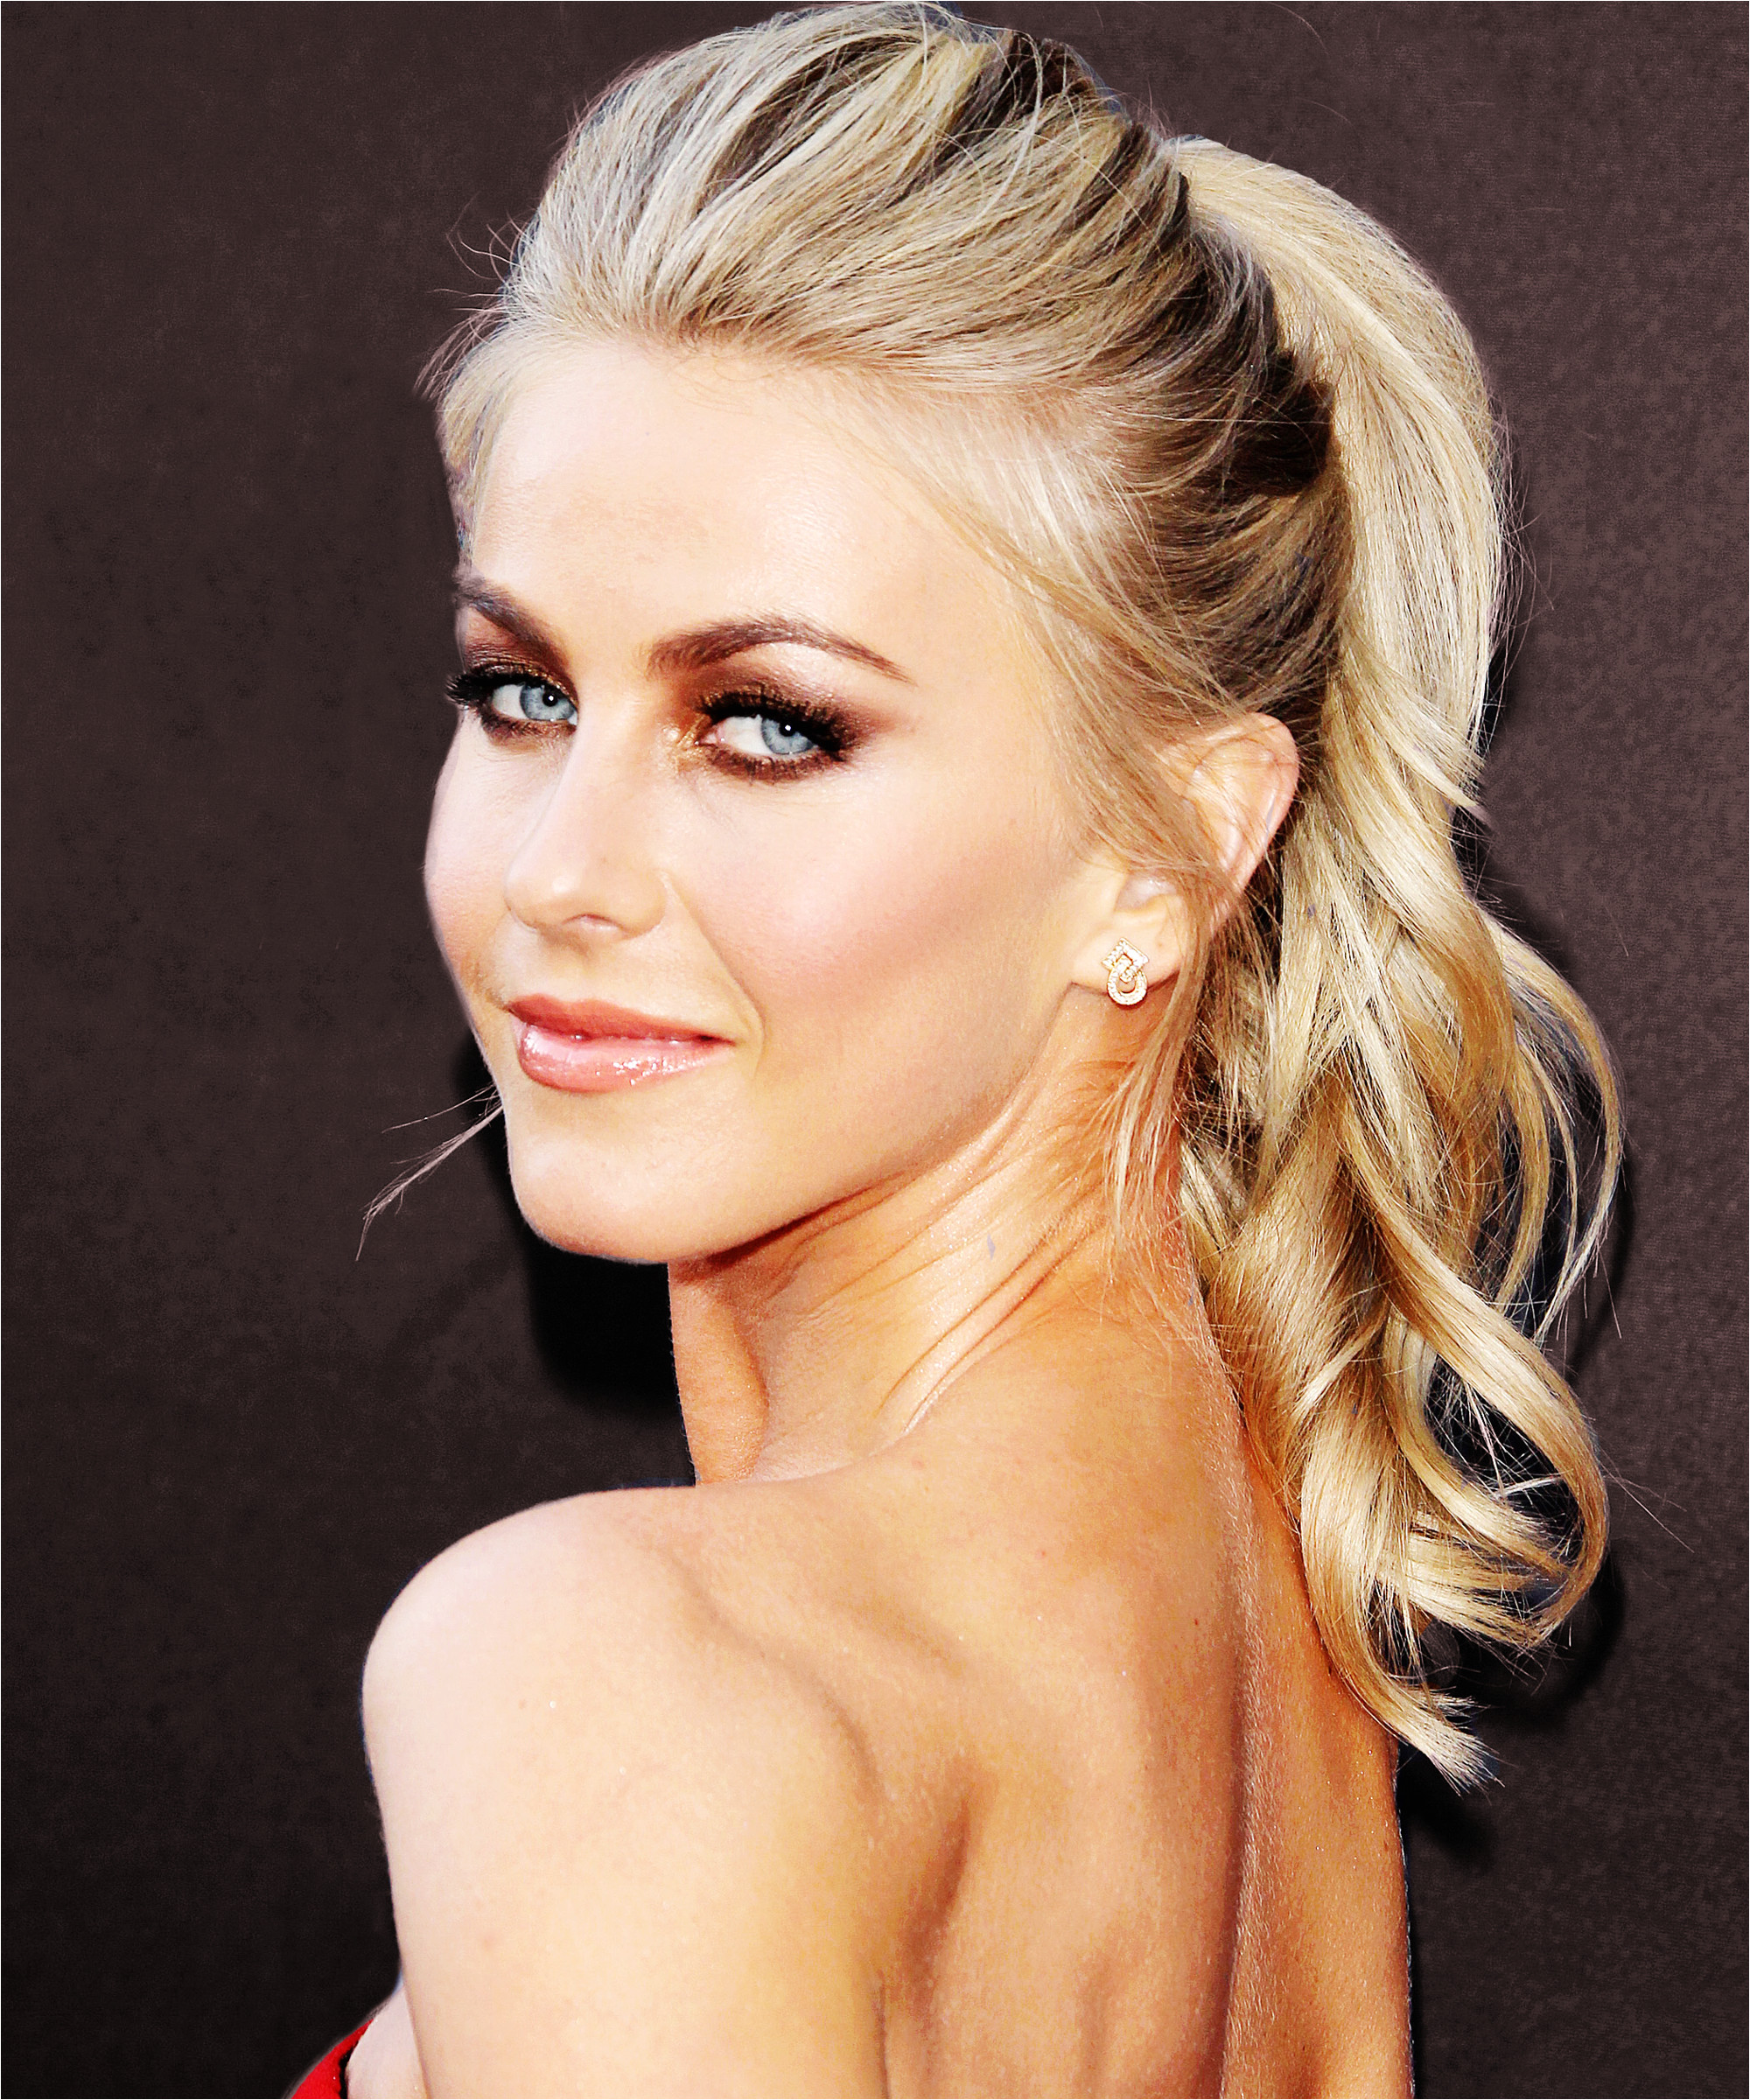 cool Awesome Celebrity Wedding Hairstyles to Copy Julianne Hough Hairstyle Riawna Capri Ponytail